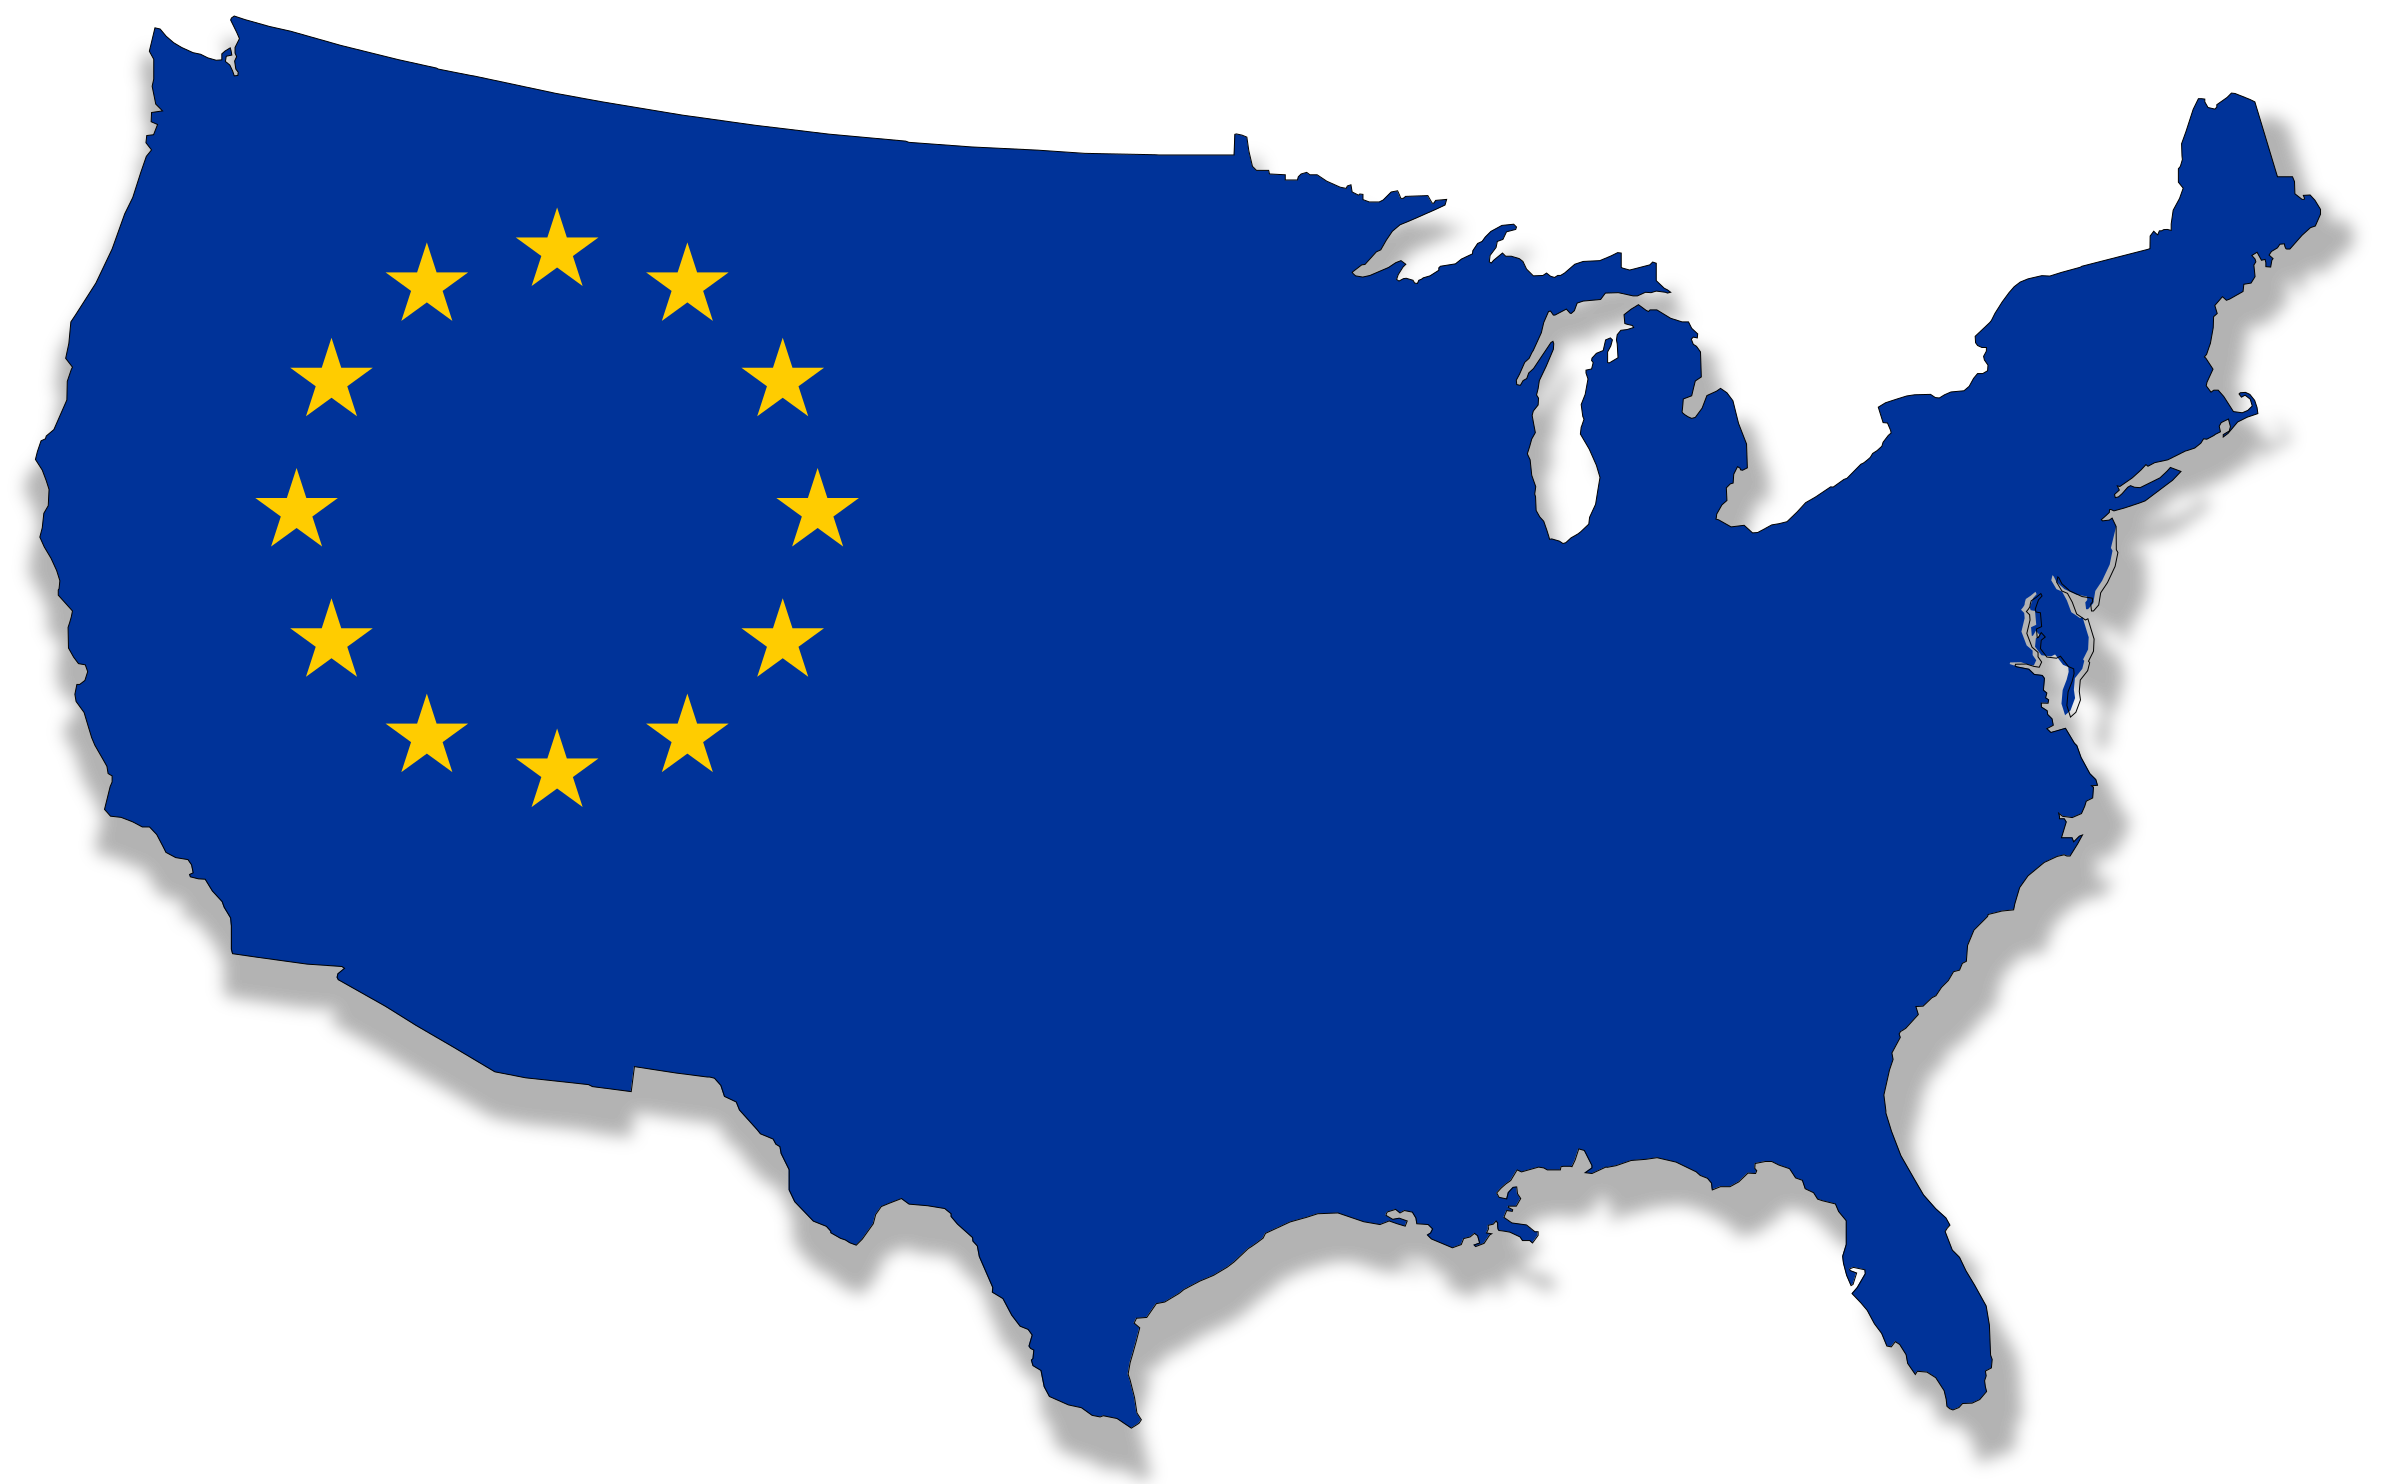 Clipart USEurope Flag Map - Map of us and europe